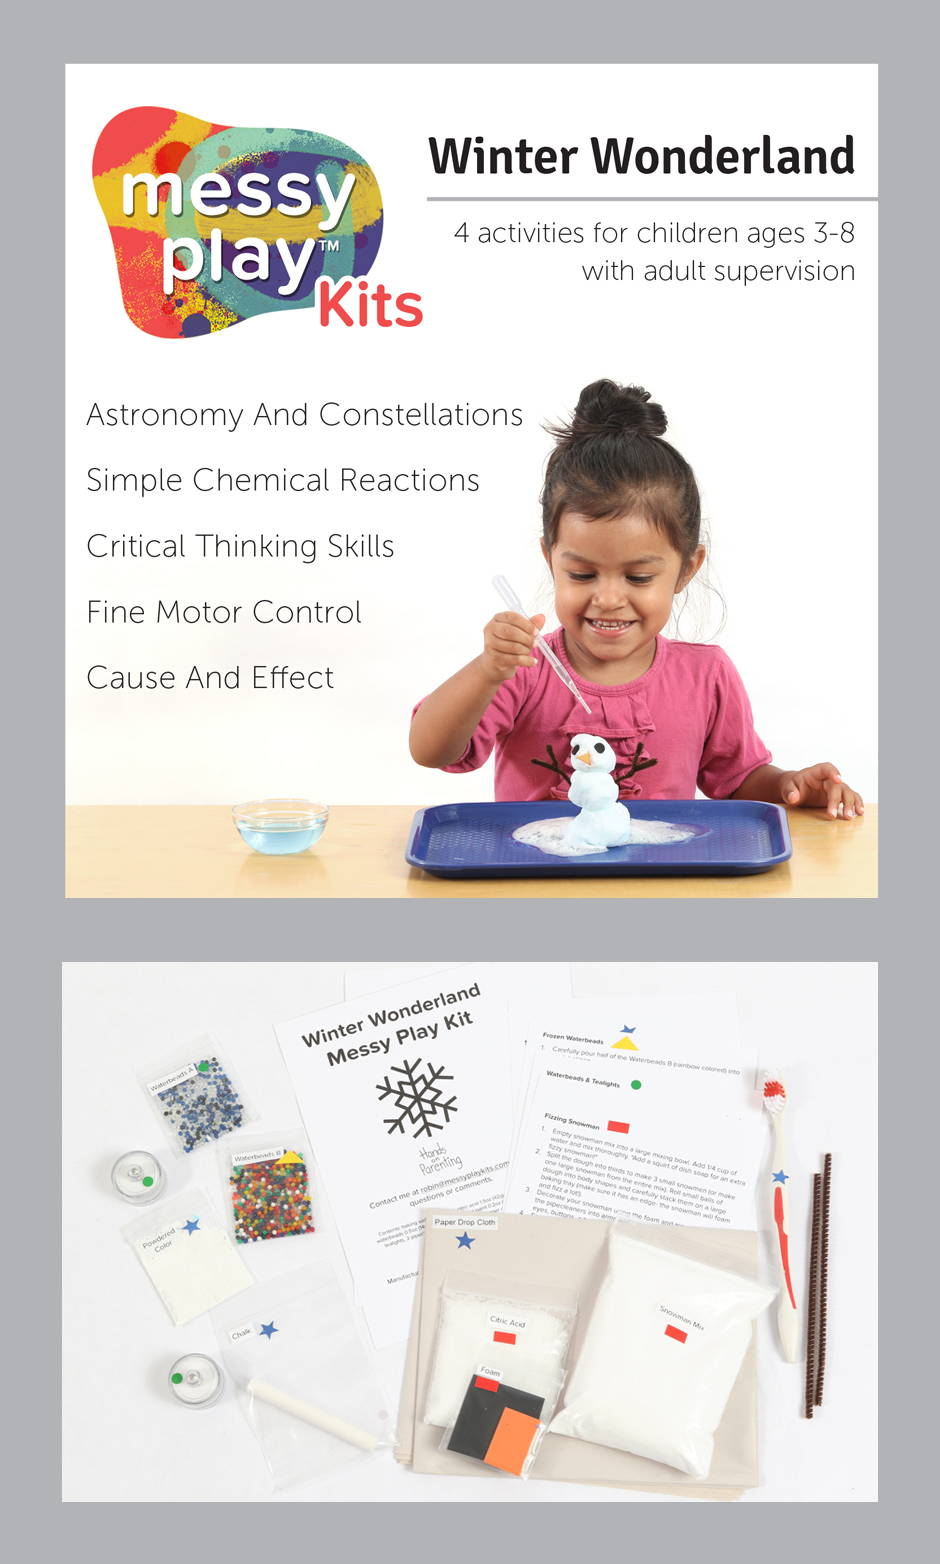 Winter Wonderland Messy Play Kit contains 4 activities that teach astronomy and constellations, simple chemical reactions, critical thinking skills, fine motor control, and cause and effect.